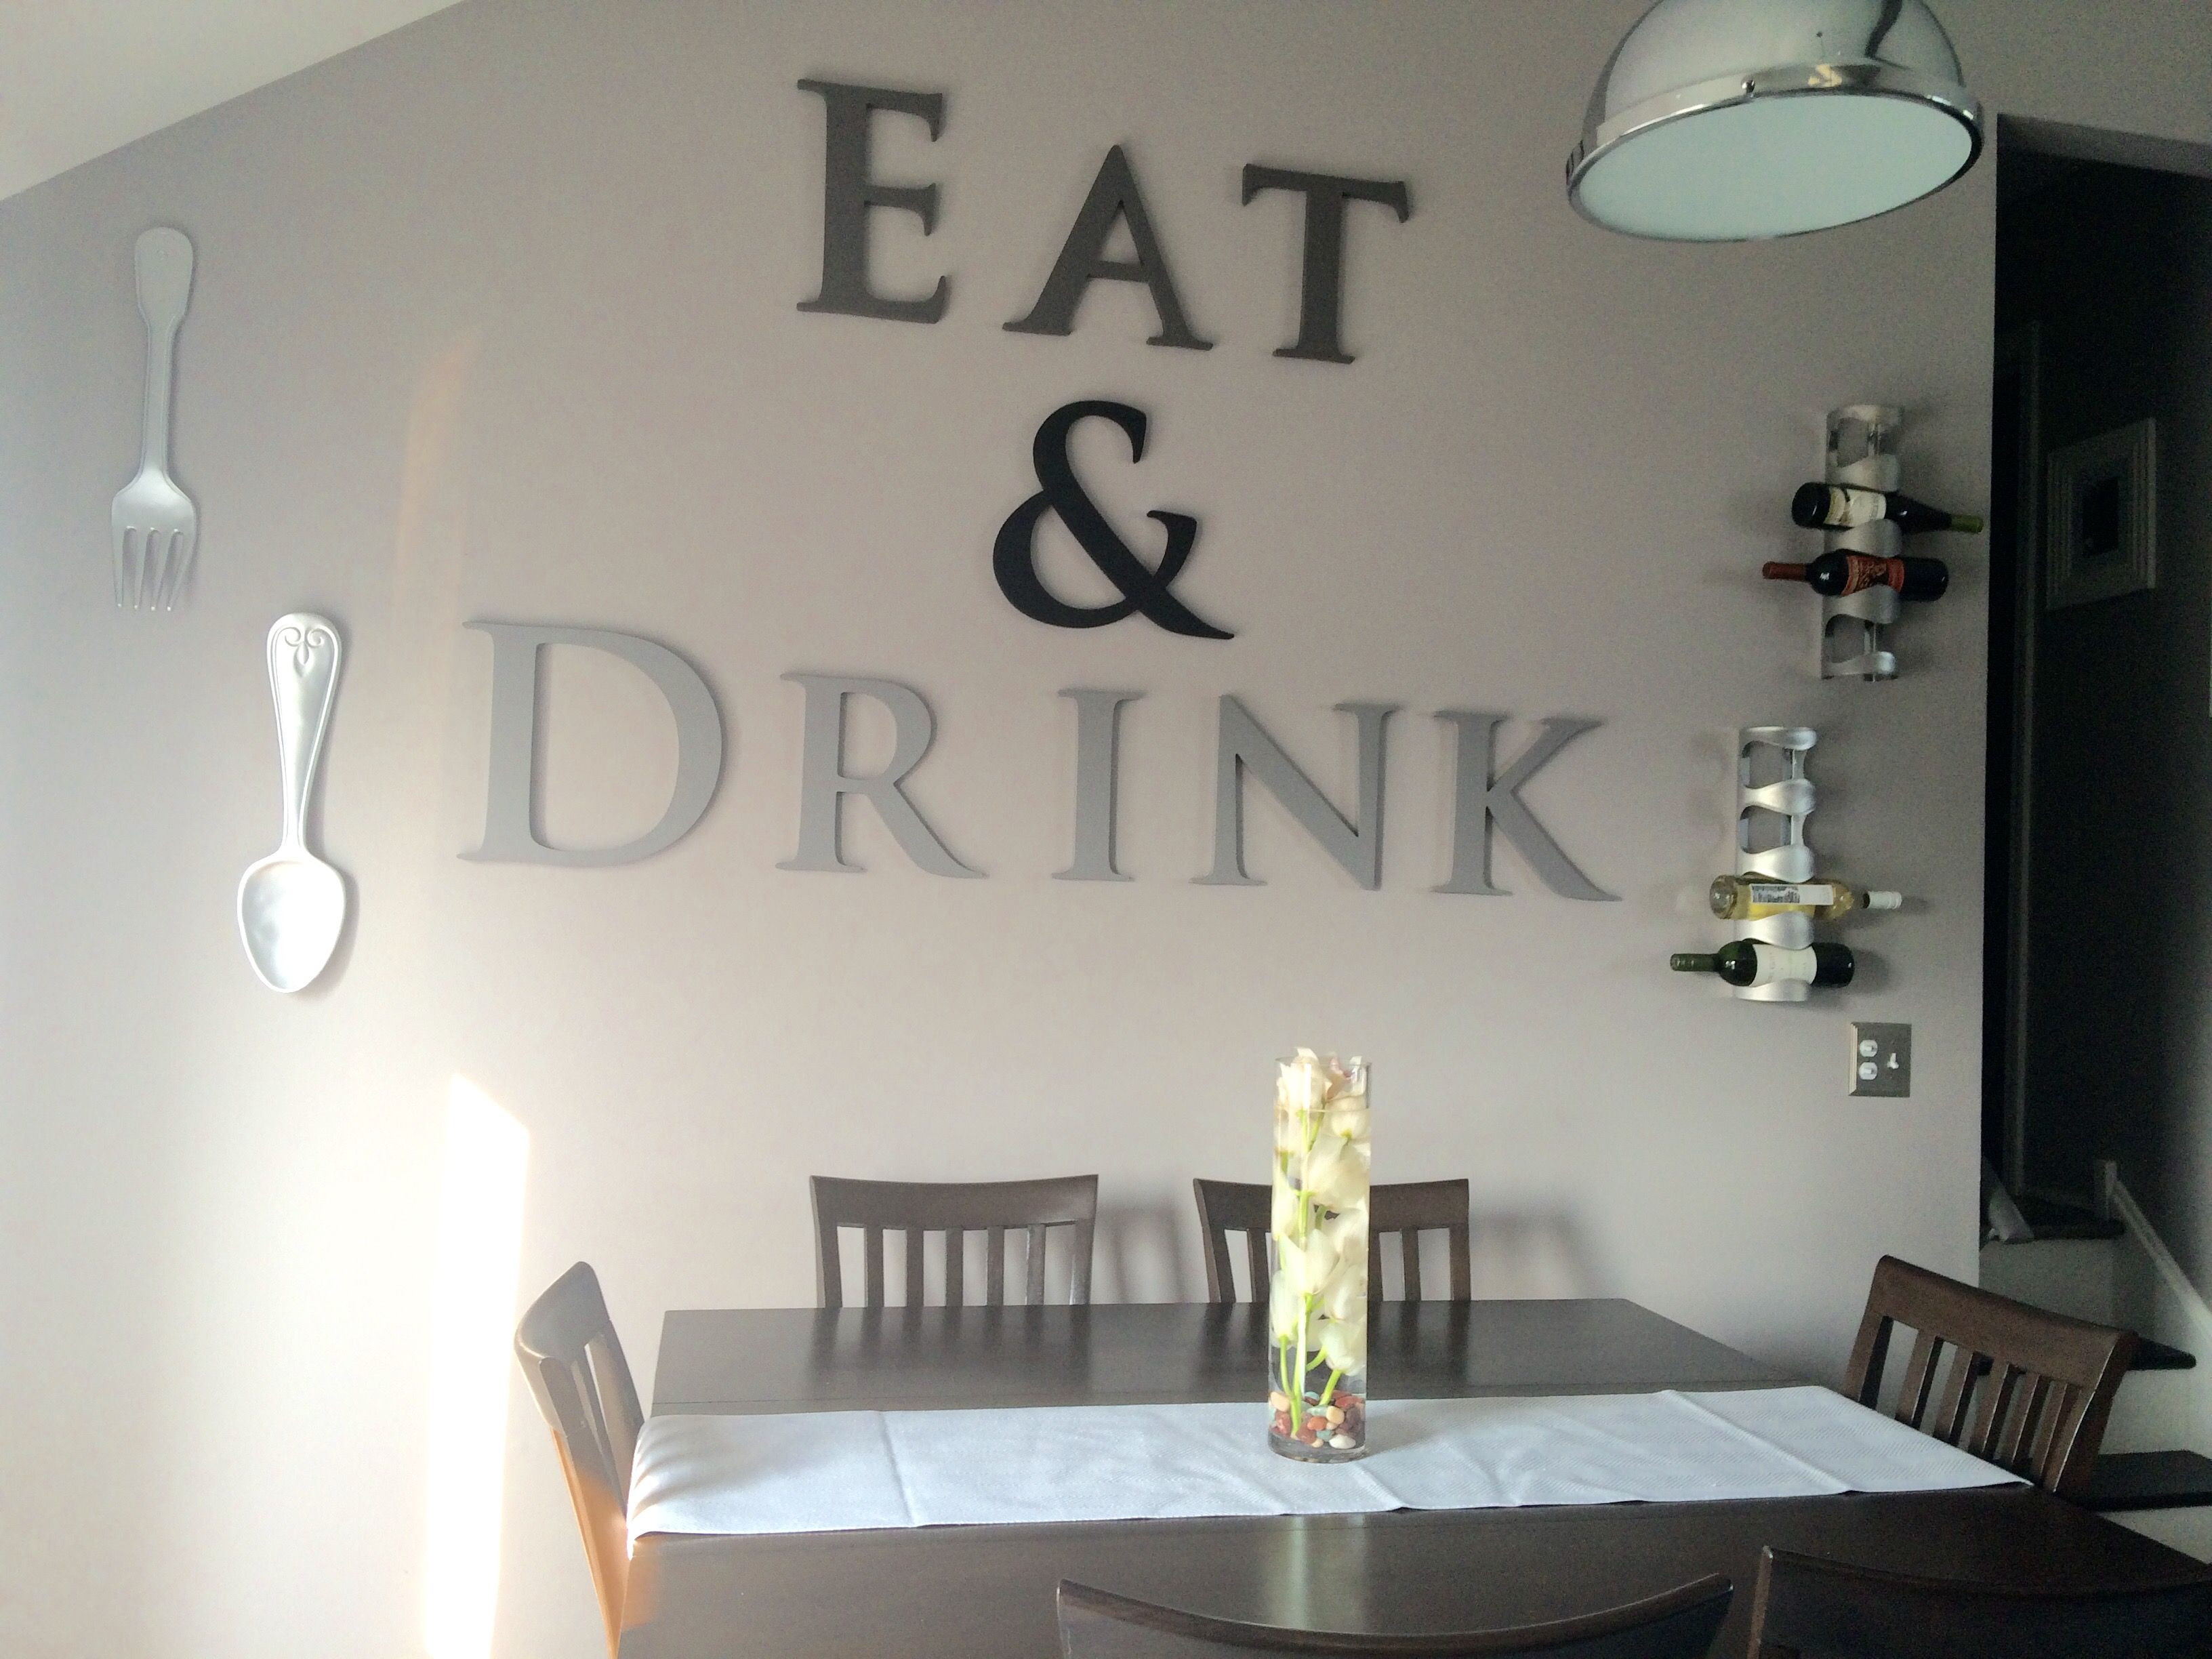 Painted wood letters from Creative Cuts wine racks from Ikea and